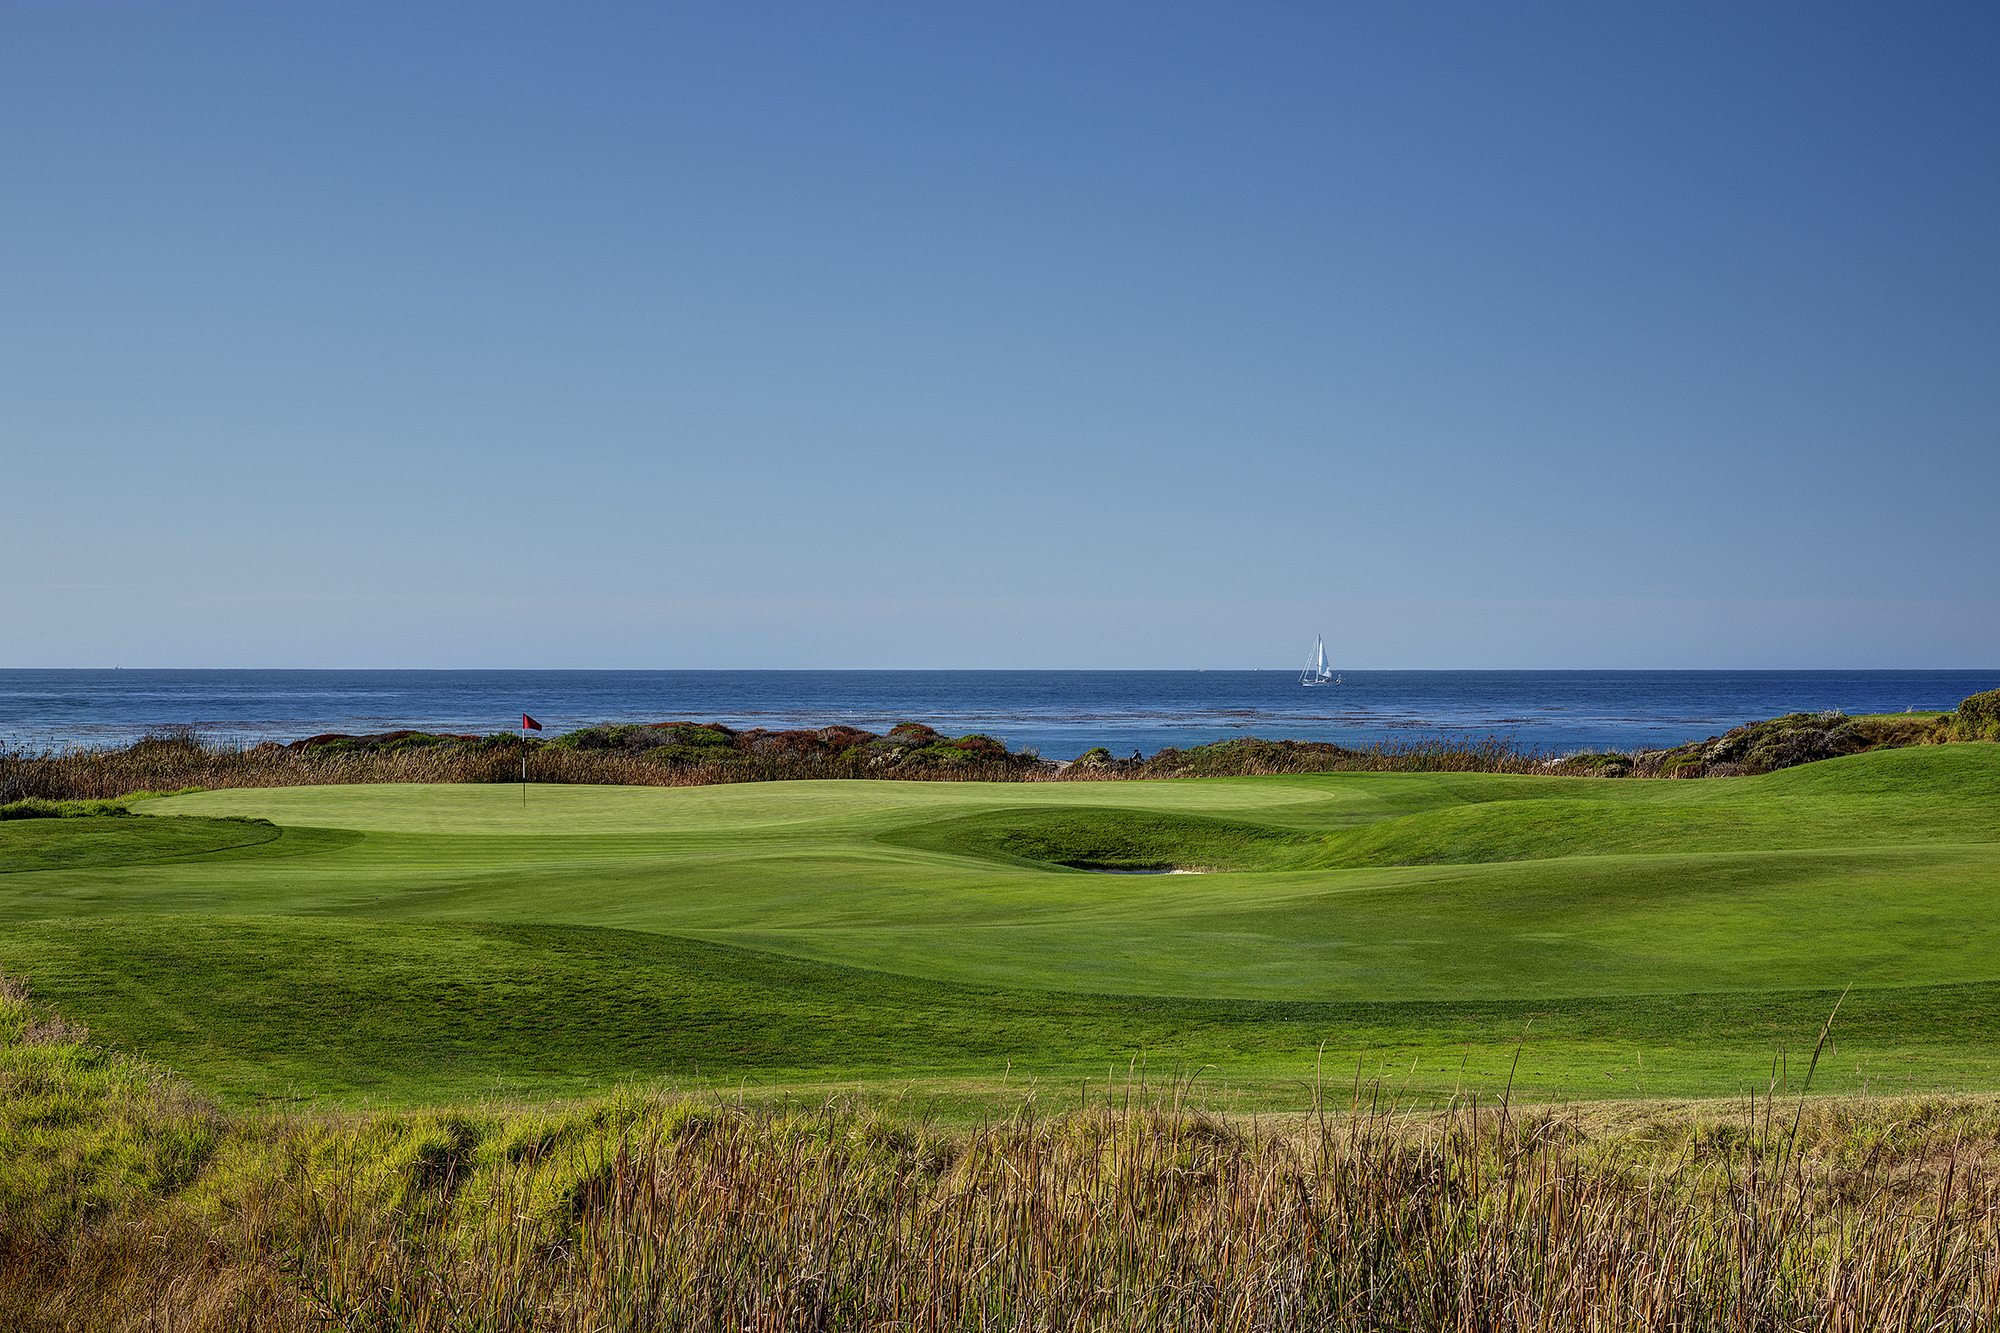 The 7th green at The Links of Spanish Bay with the Pacific Ocean and a sail boat in the background